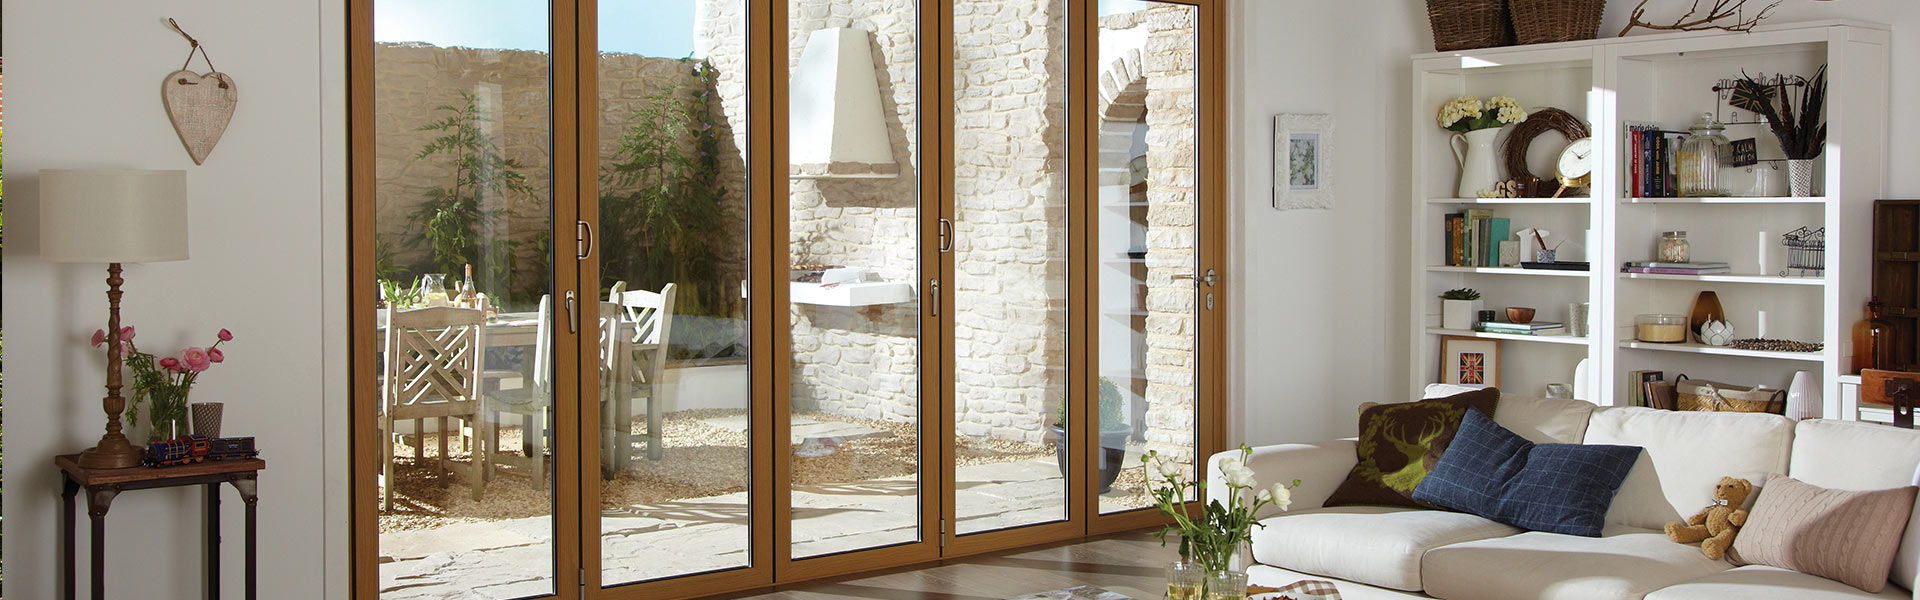 origin barn bi-folding doors wood effect